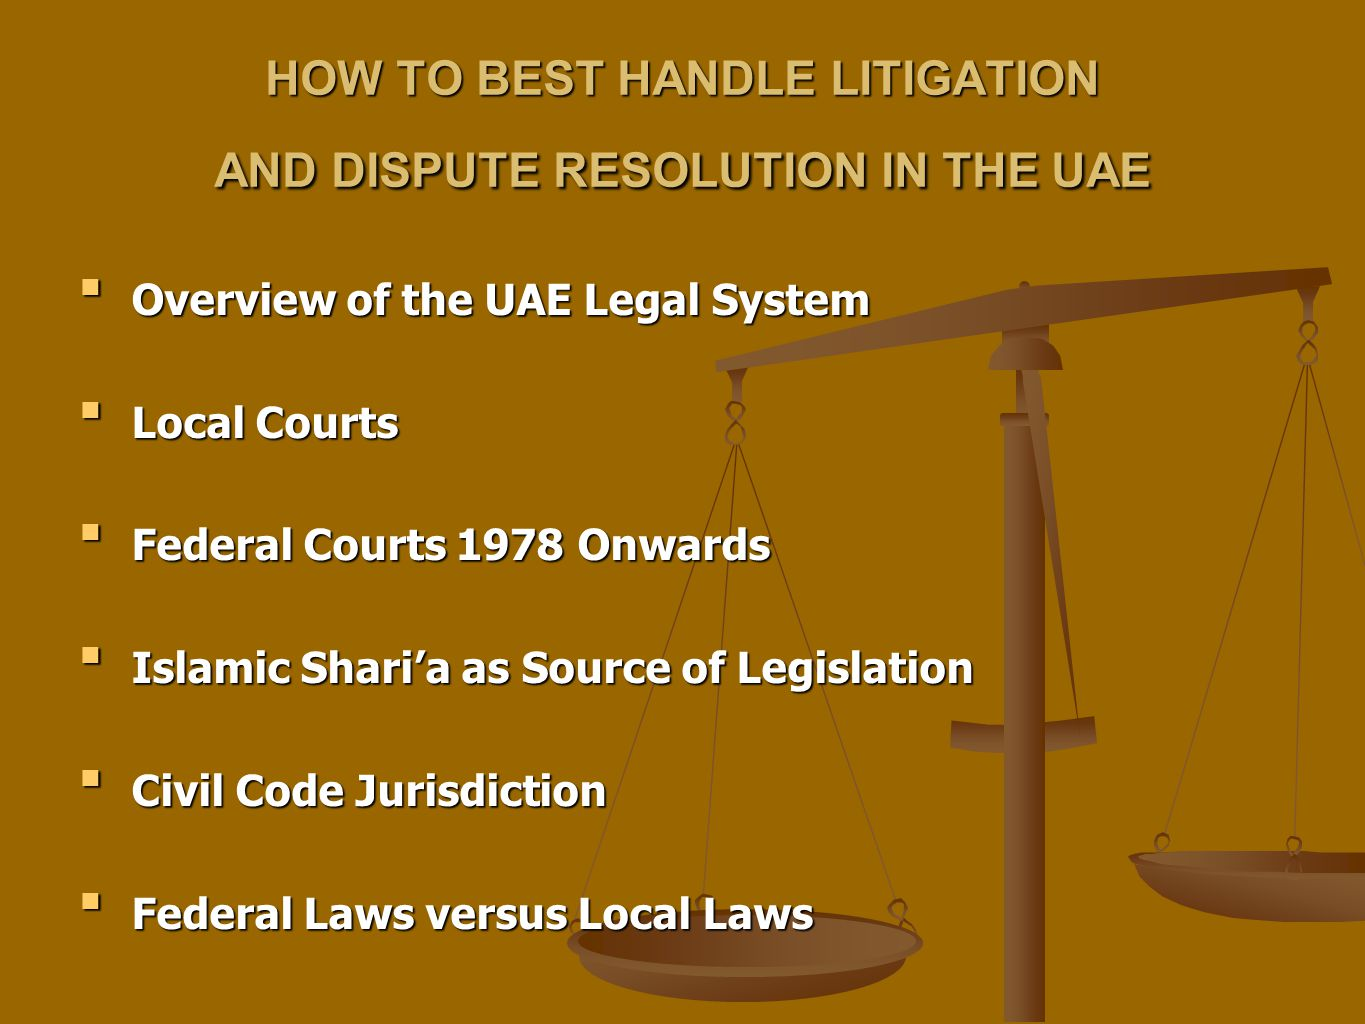 HOW TO BEST HANDLE LITIGATION AND DISPUTE RESOLUTION IN THE UAE Overview of the UAE Legal SystemOverview of the UAE Legal System Local CourtsLocal Courts Federal Courts 1978 OnwardsFederal Courts 1978 Onwards Islamic Shari'a as Source of LegislationIslamic Shari'a as Source of Legislation Civil Code JurisdictionCivil Code Jurisdiction Federal Laws versus Local LawsFederal Laws versus Local Laws